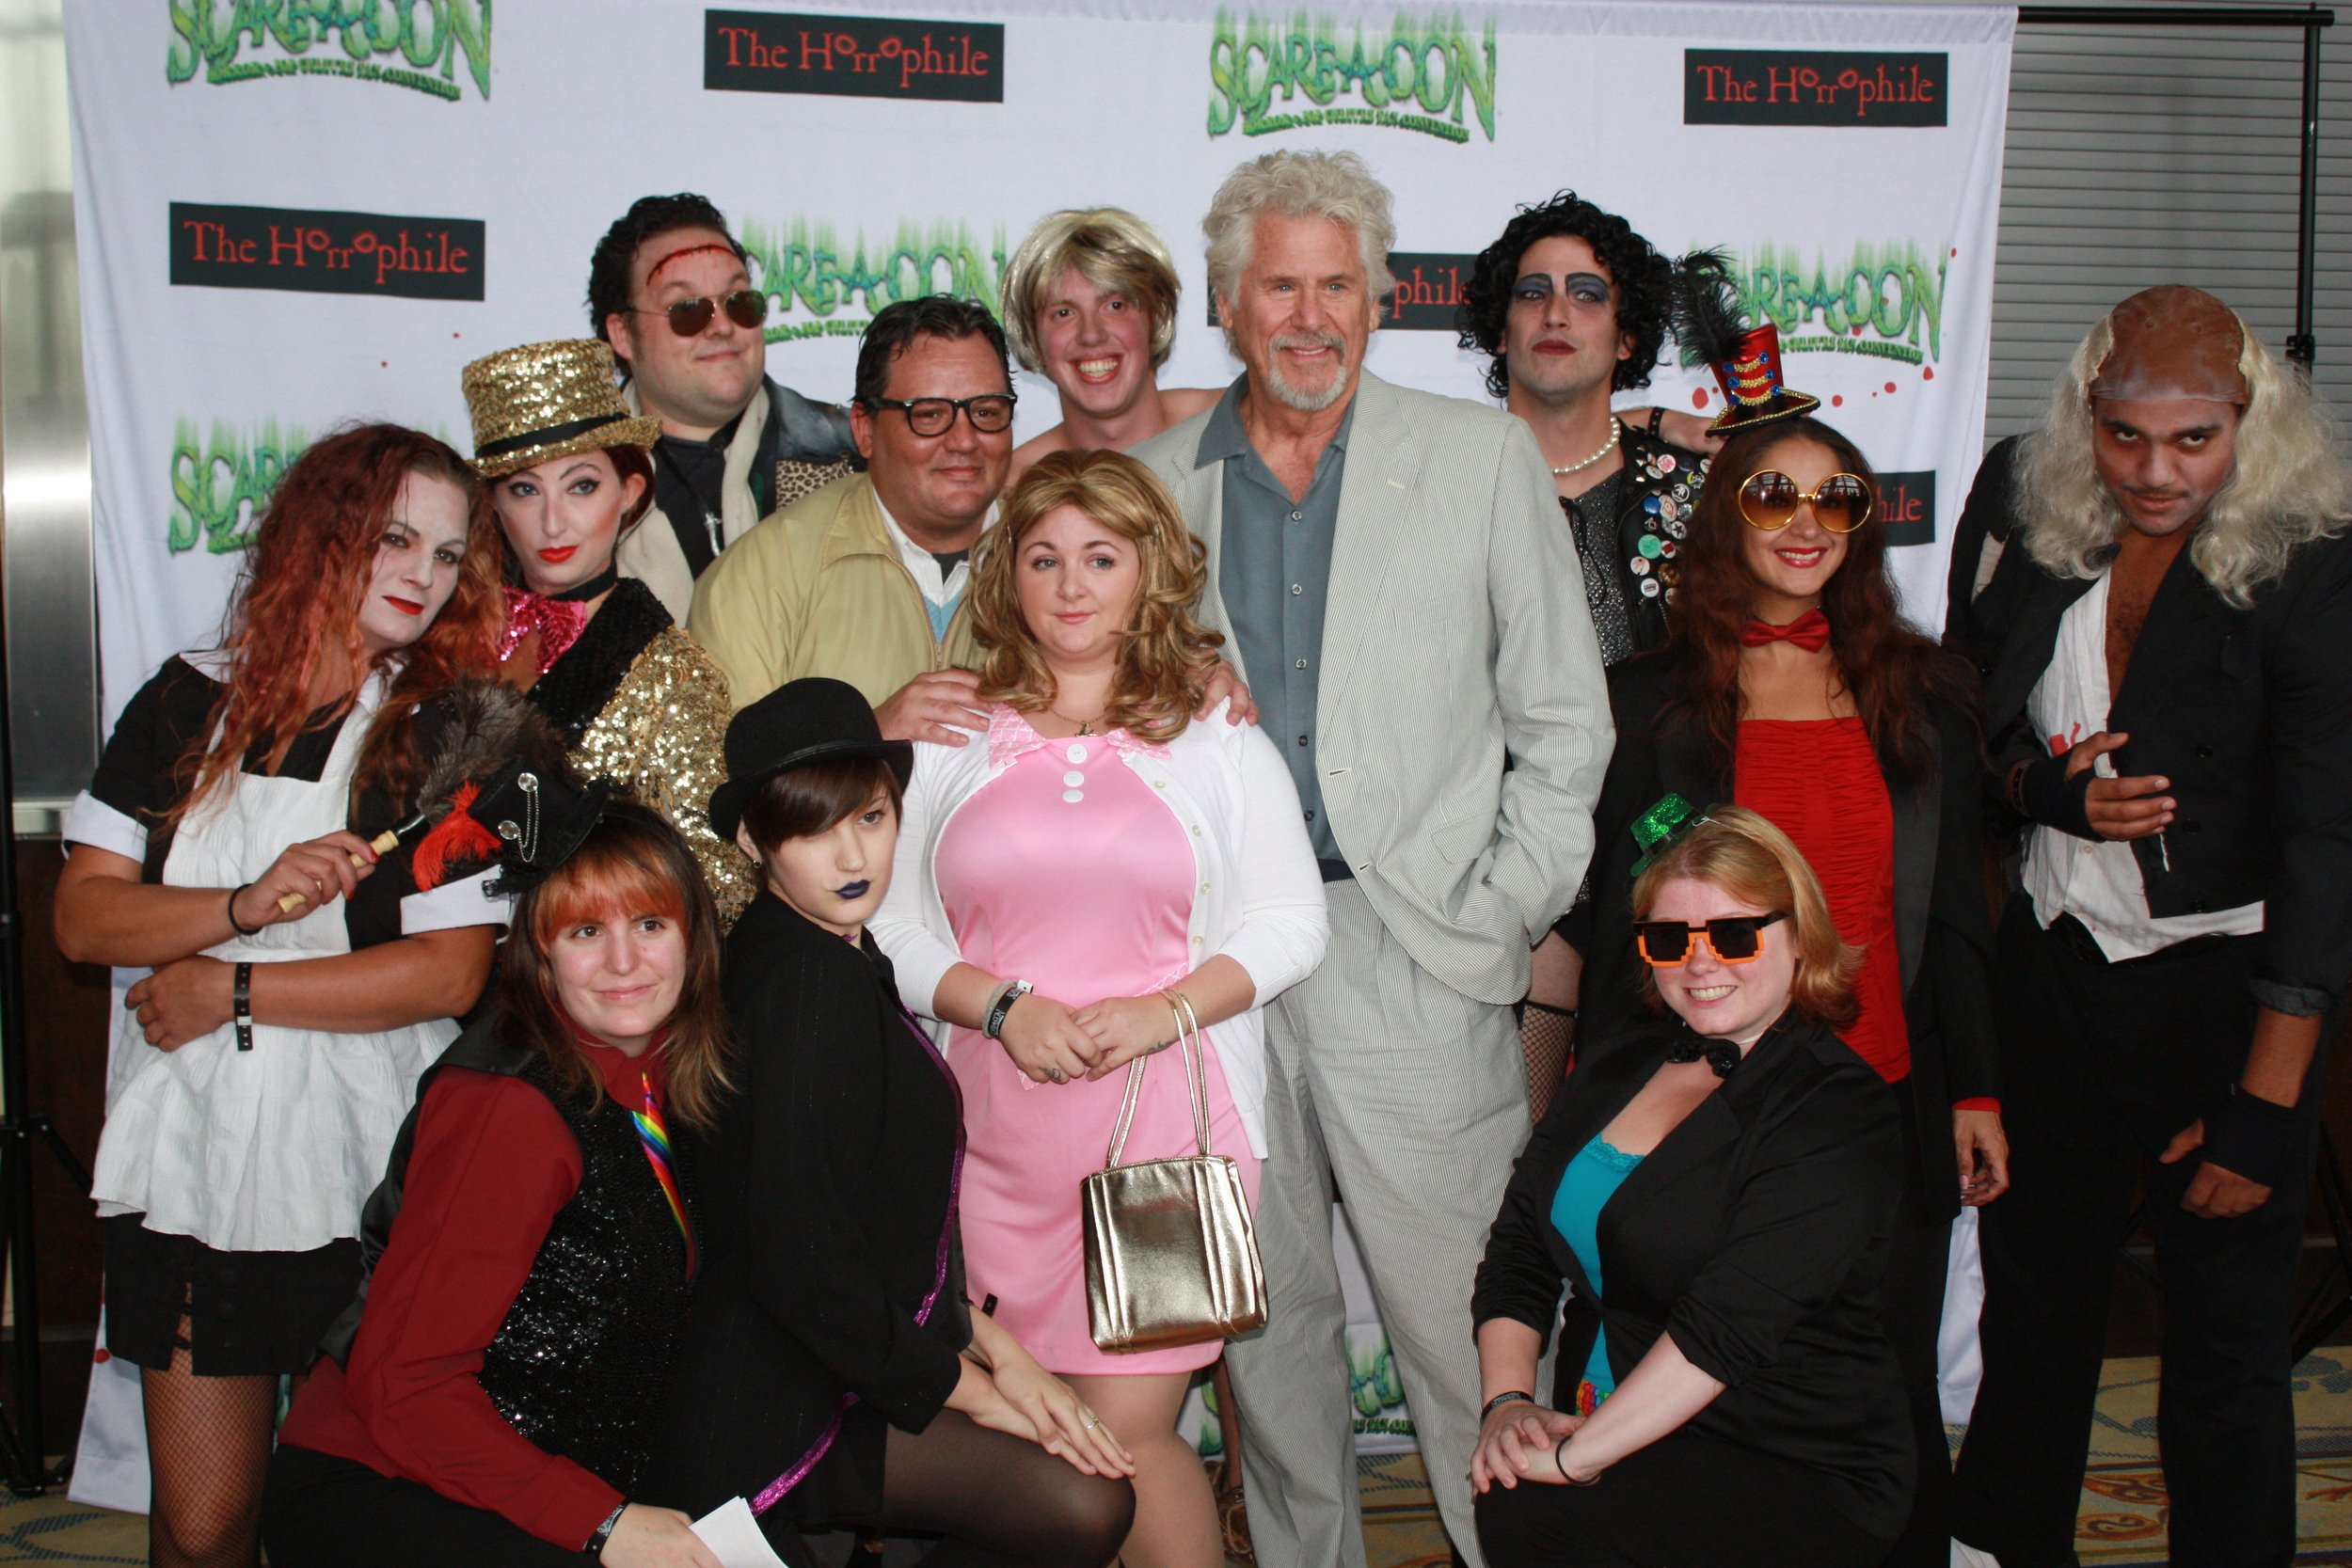 THE KIDS OF ALBANY WITH THE ASSHOLE HIMSELF BARRY BOSTWICK